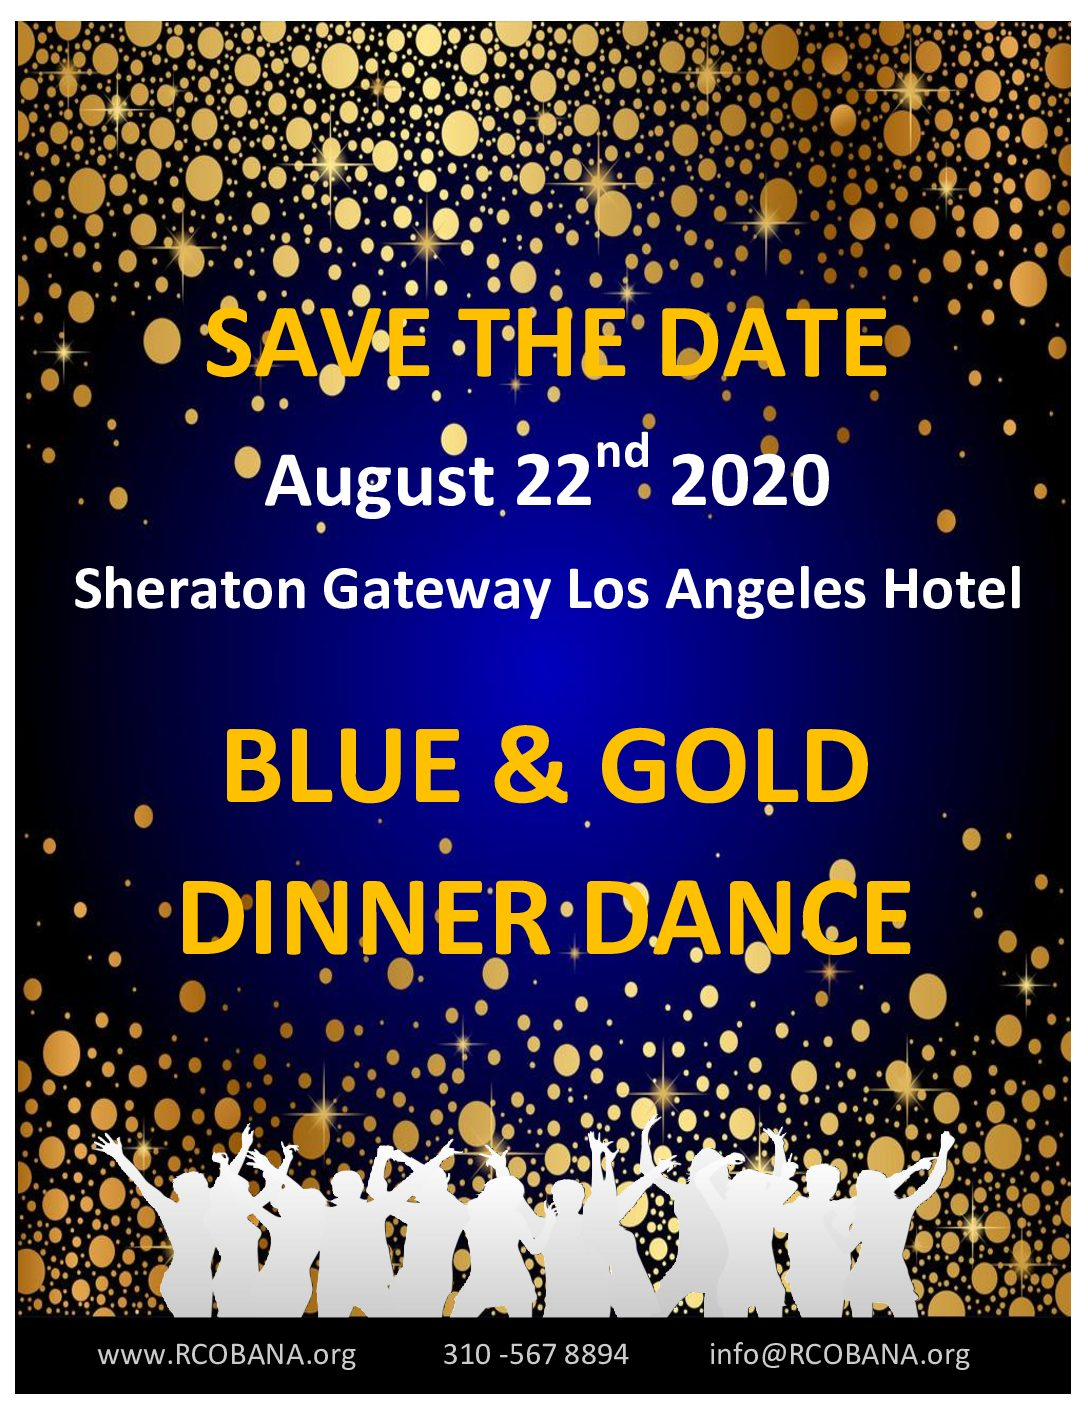 BLUE & GOLD DINNER DANCE